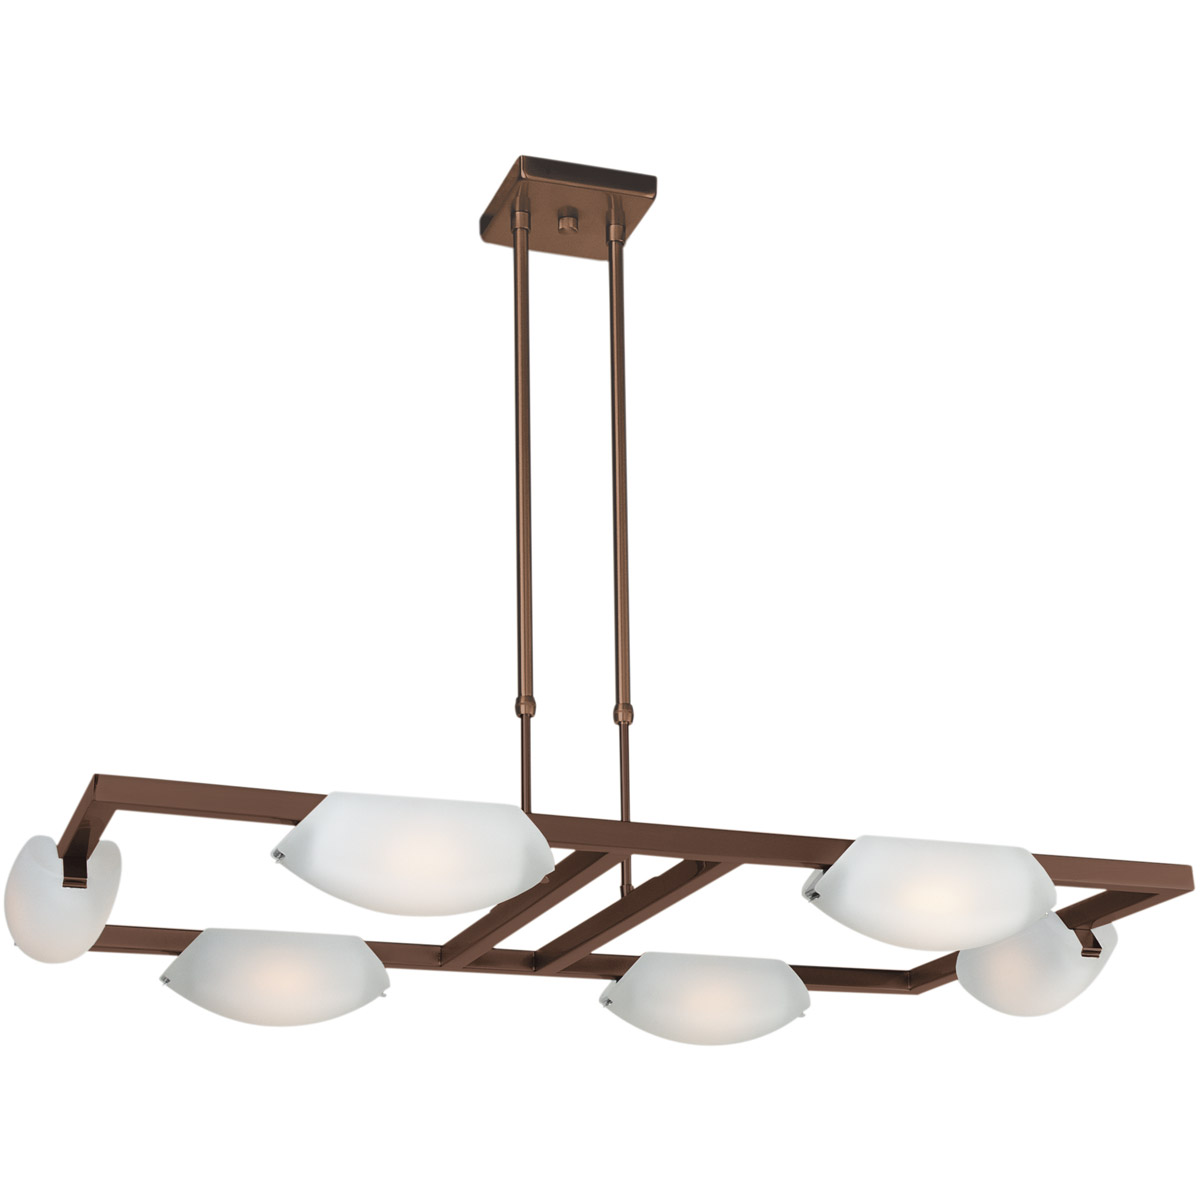 Access Lighting Nido Collection - 6 Light 3 inch Oil Rubbed Bronze Finish Chandelier